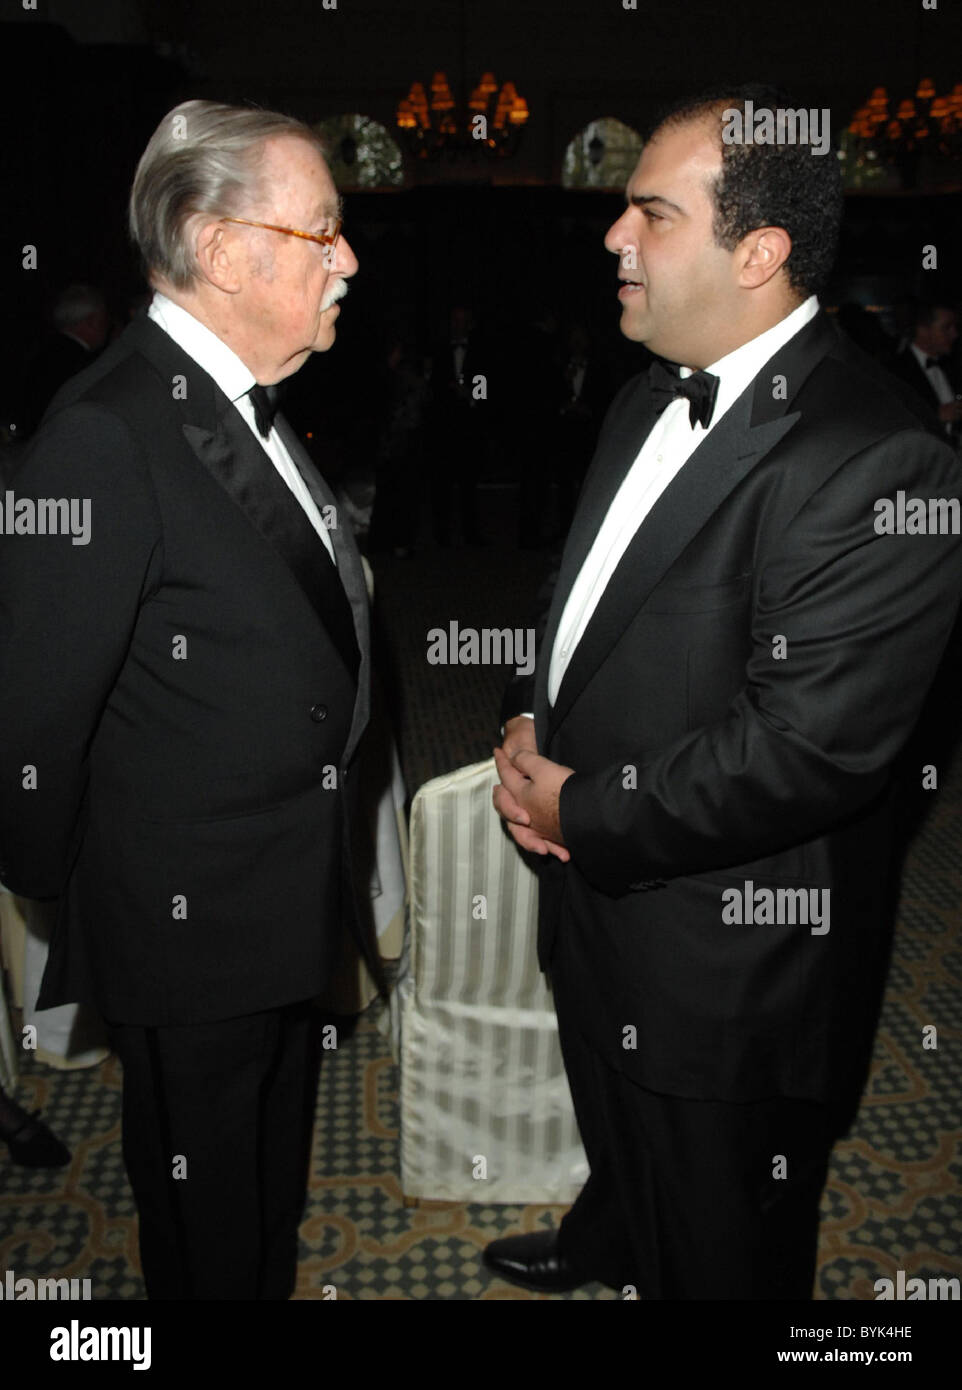 Alan Whicker and Stelios Haji-Ioannou Airline of the Year Awards held at the Landmark Hotel London, England - 16.04.07 - Stock Image